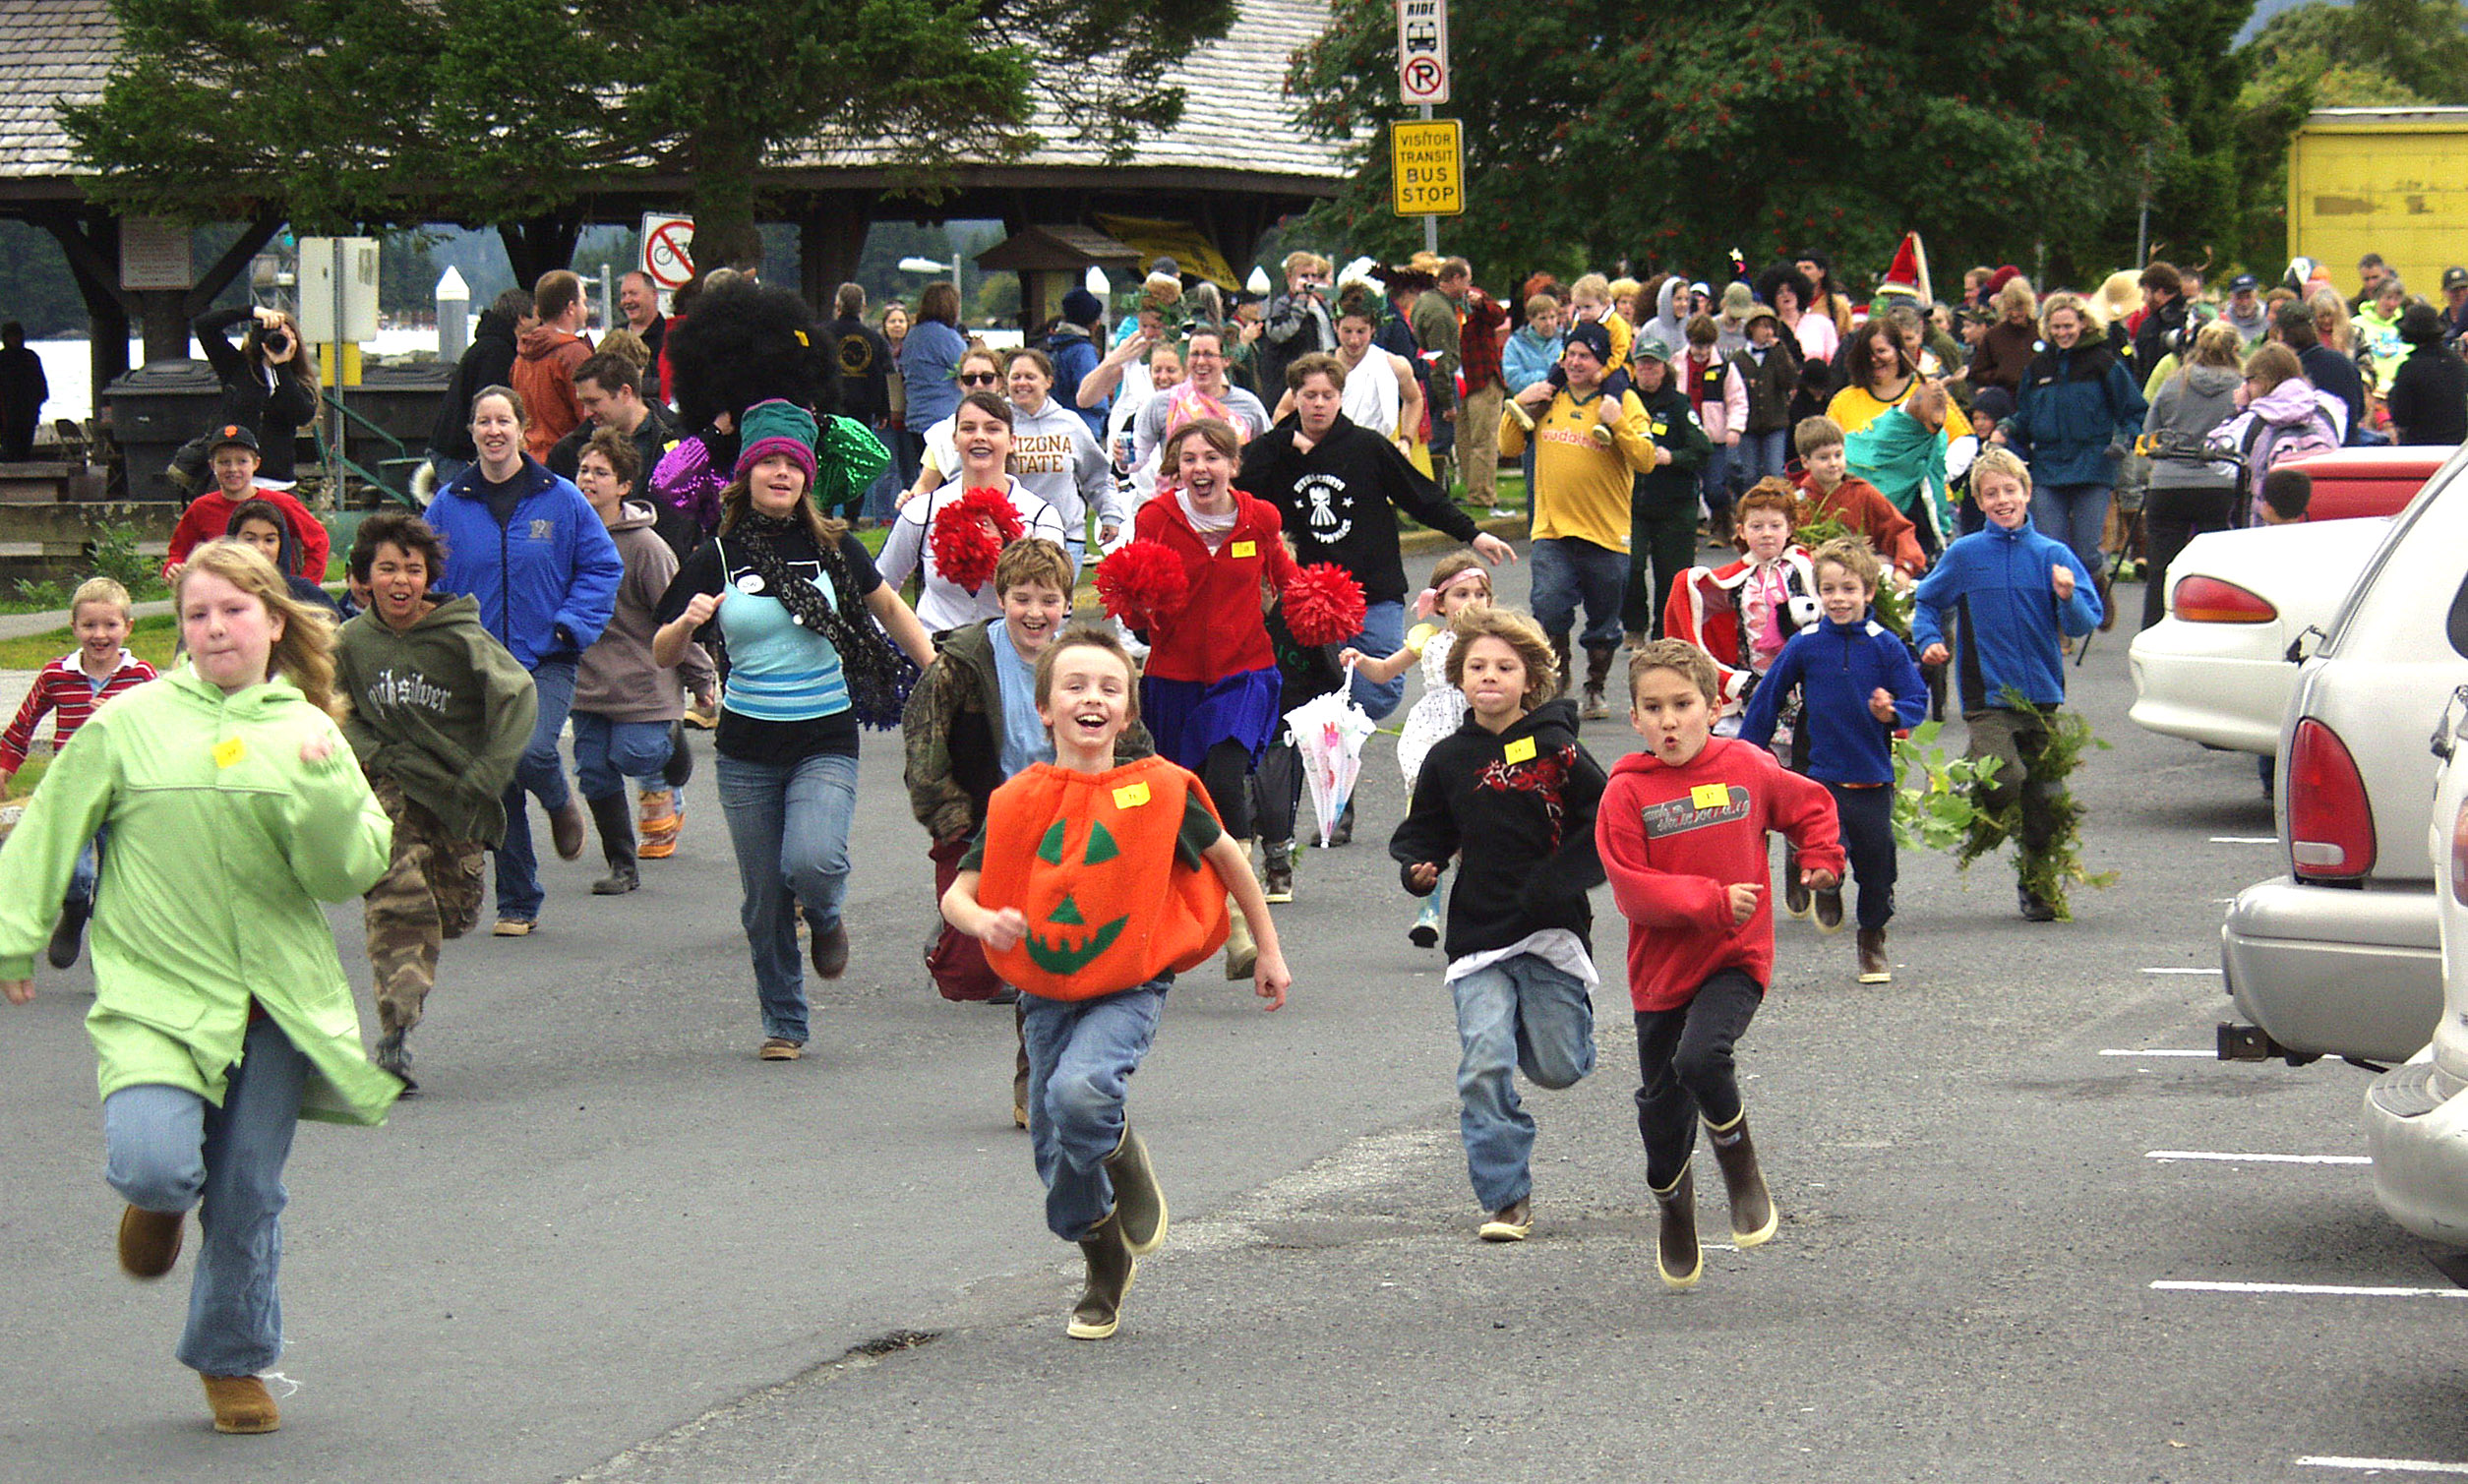 Runners hit the trail during the 14th Annual Running of the Boots race on Sept. 27, 2008, in Sitka.